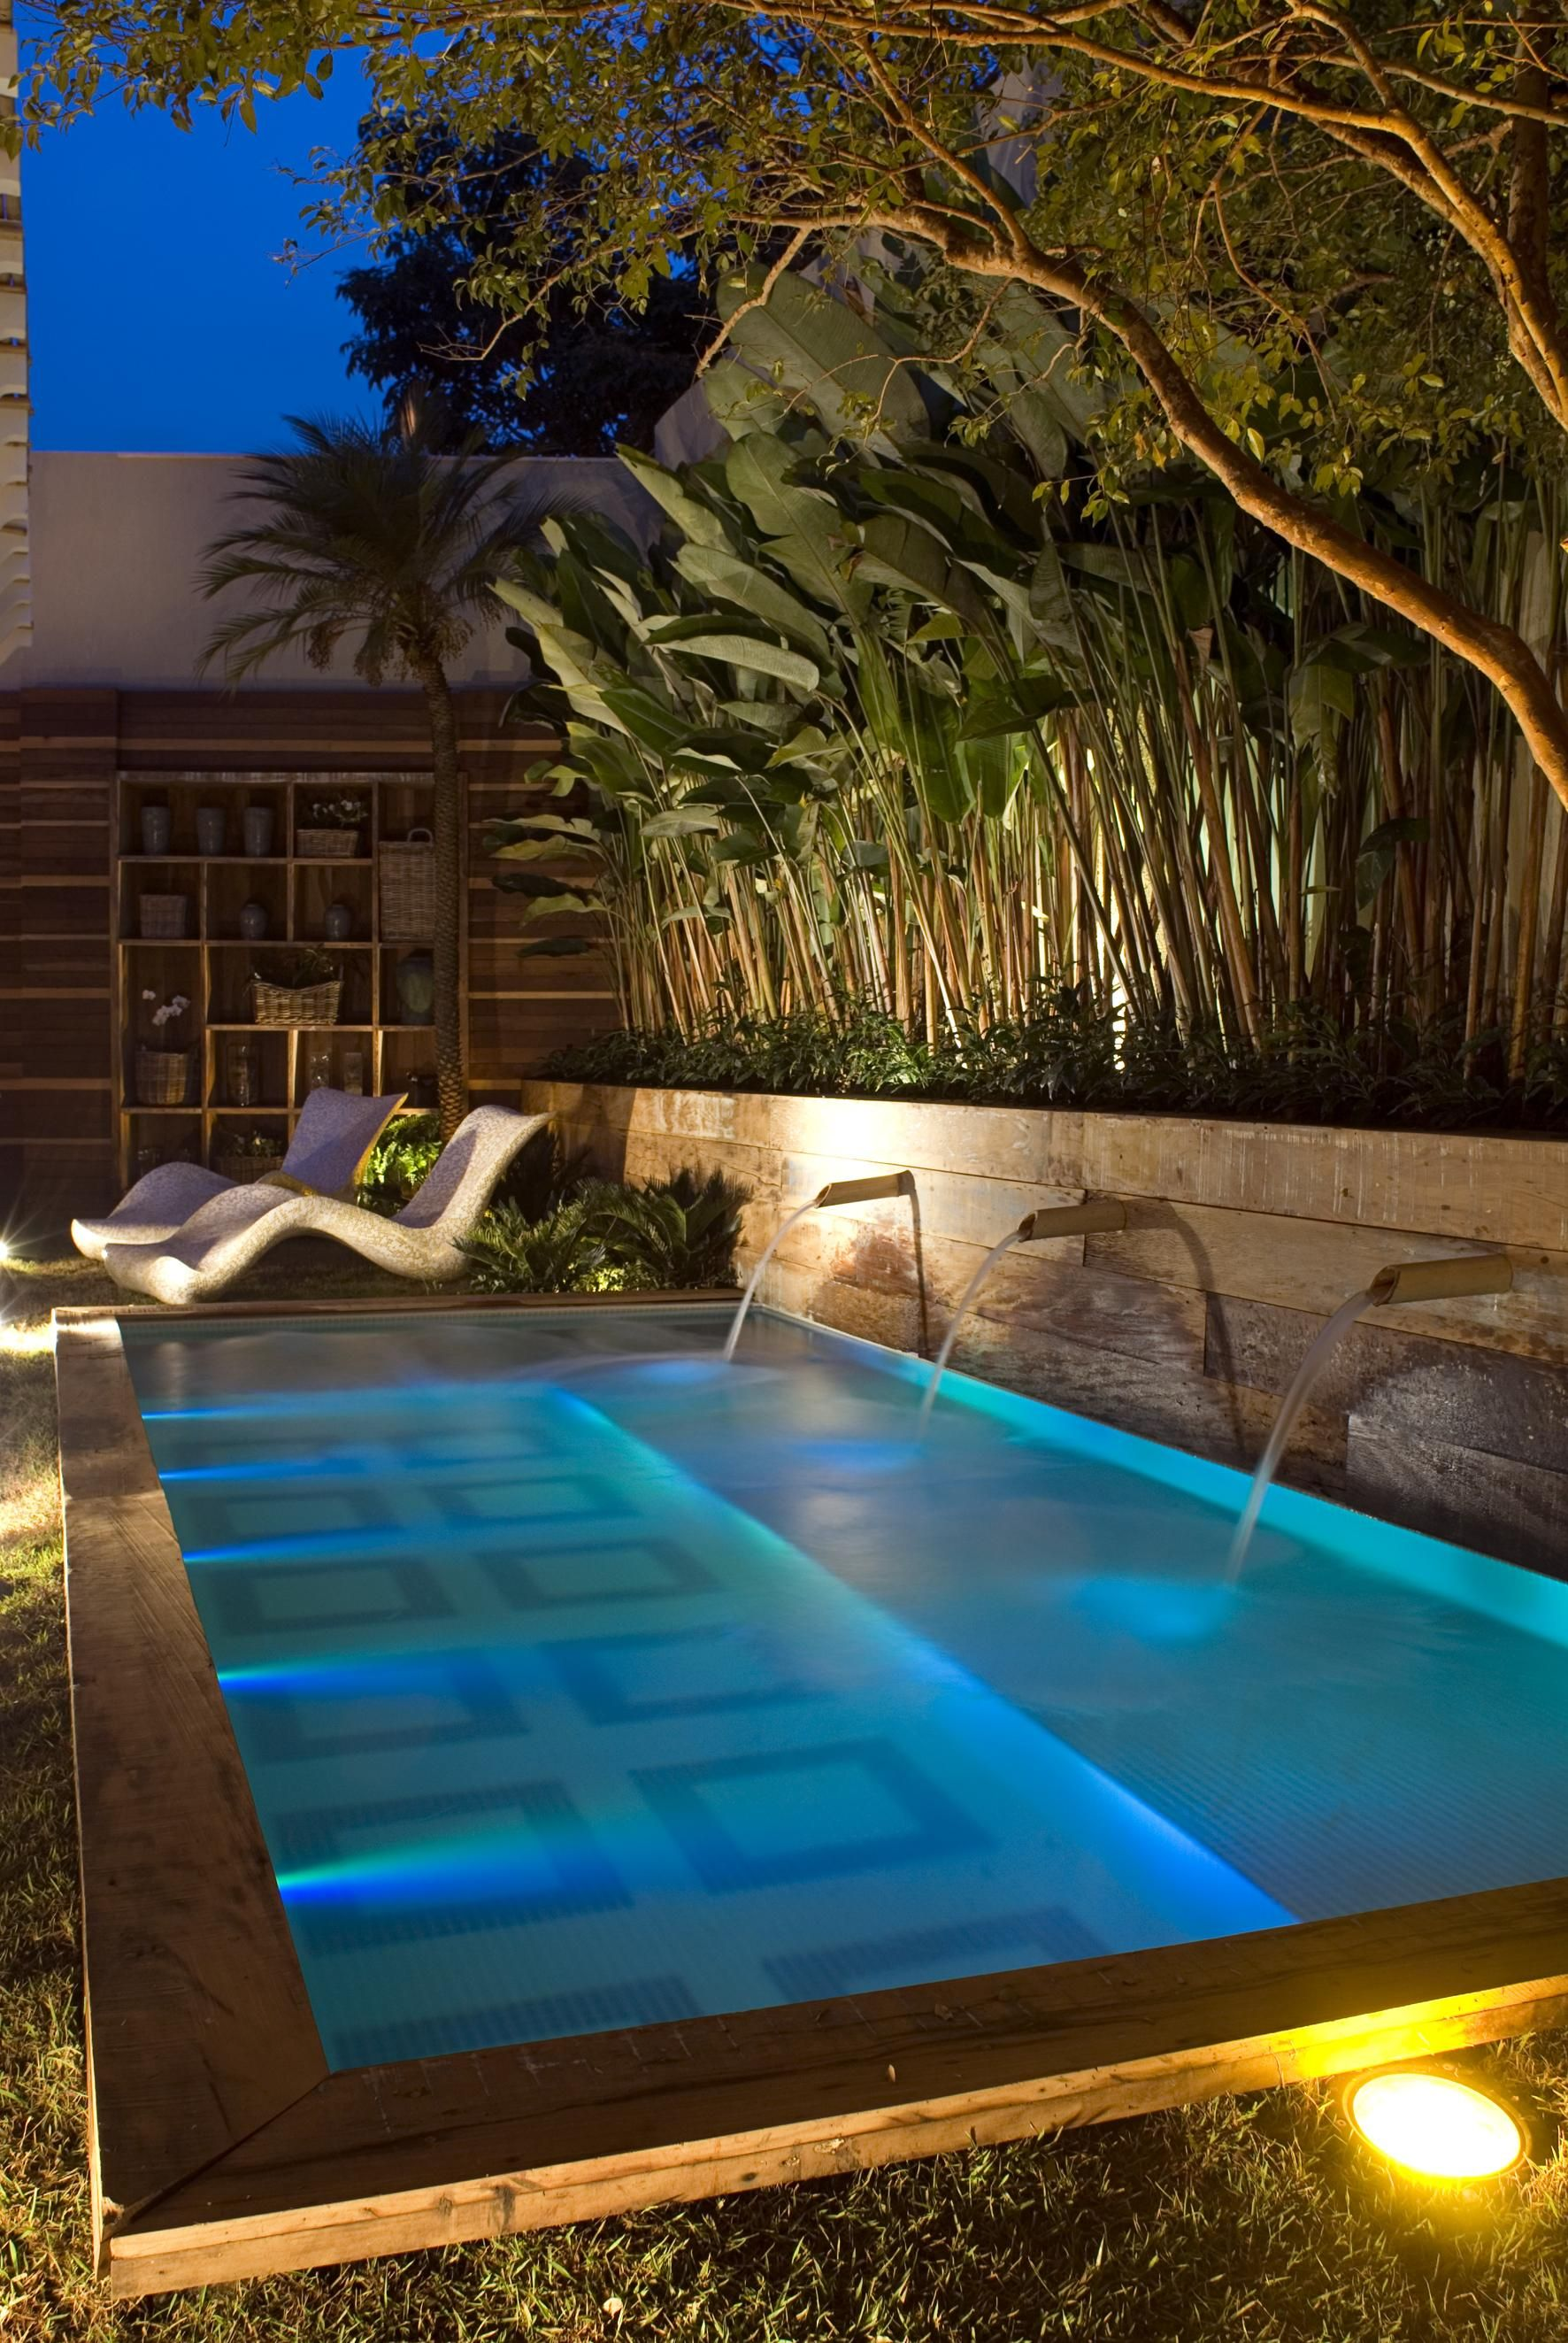 Geometric Straight Line Pool With Simple Water Spouts And Stylish